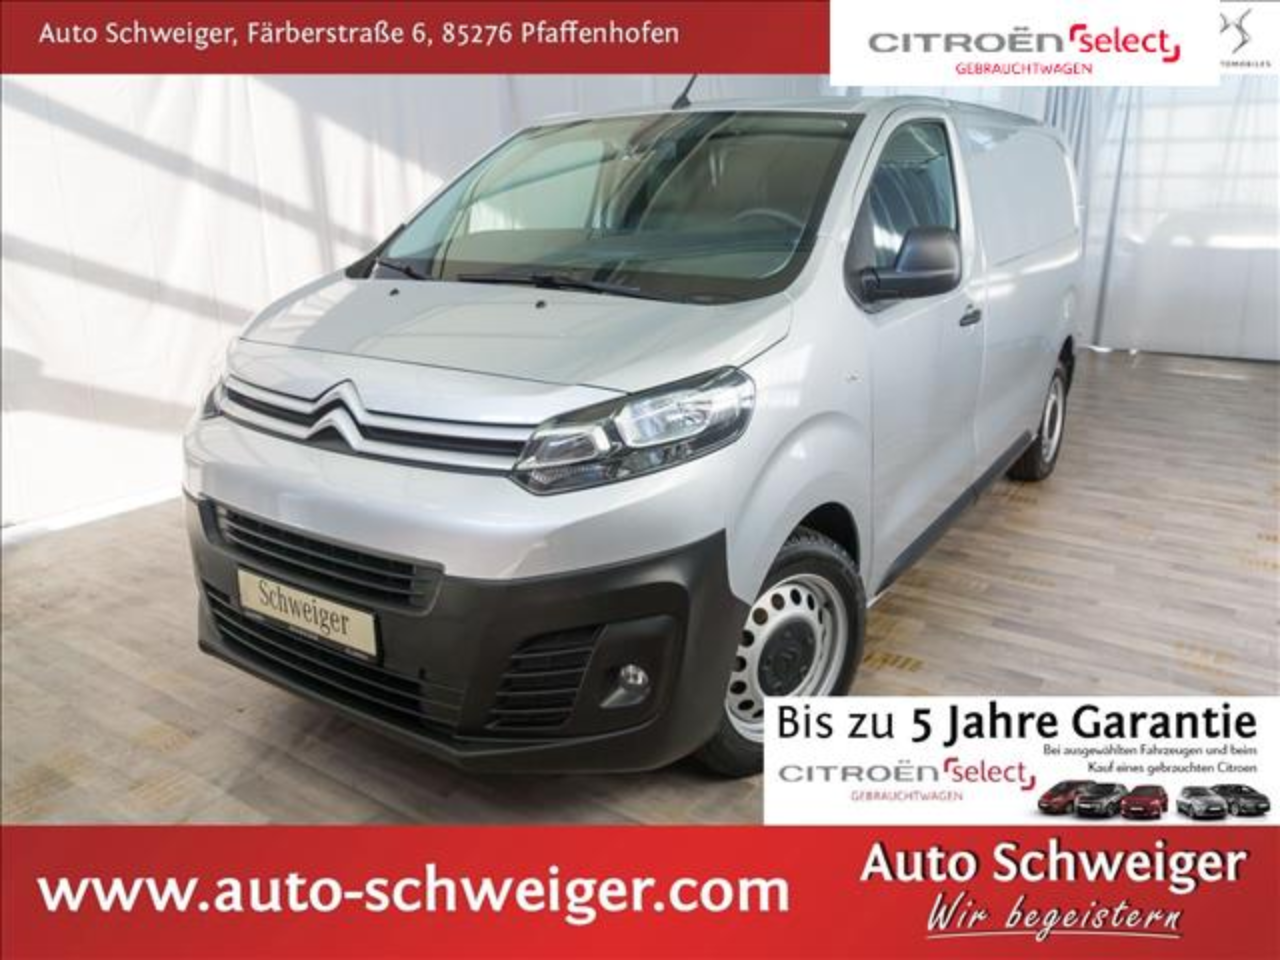 Citroën Jumpy KW Niv2L2 Busin.PTS hi. Radio DAB Klima